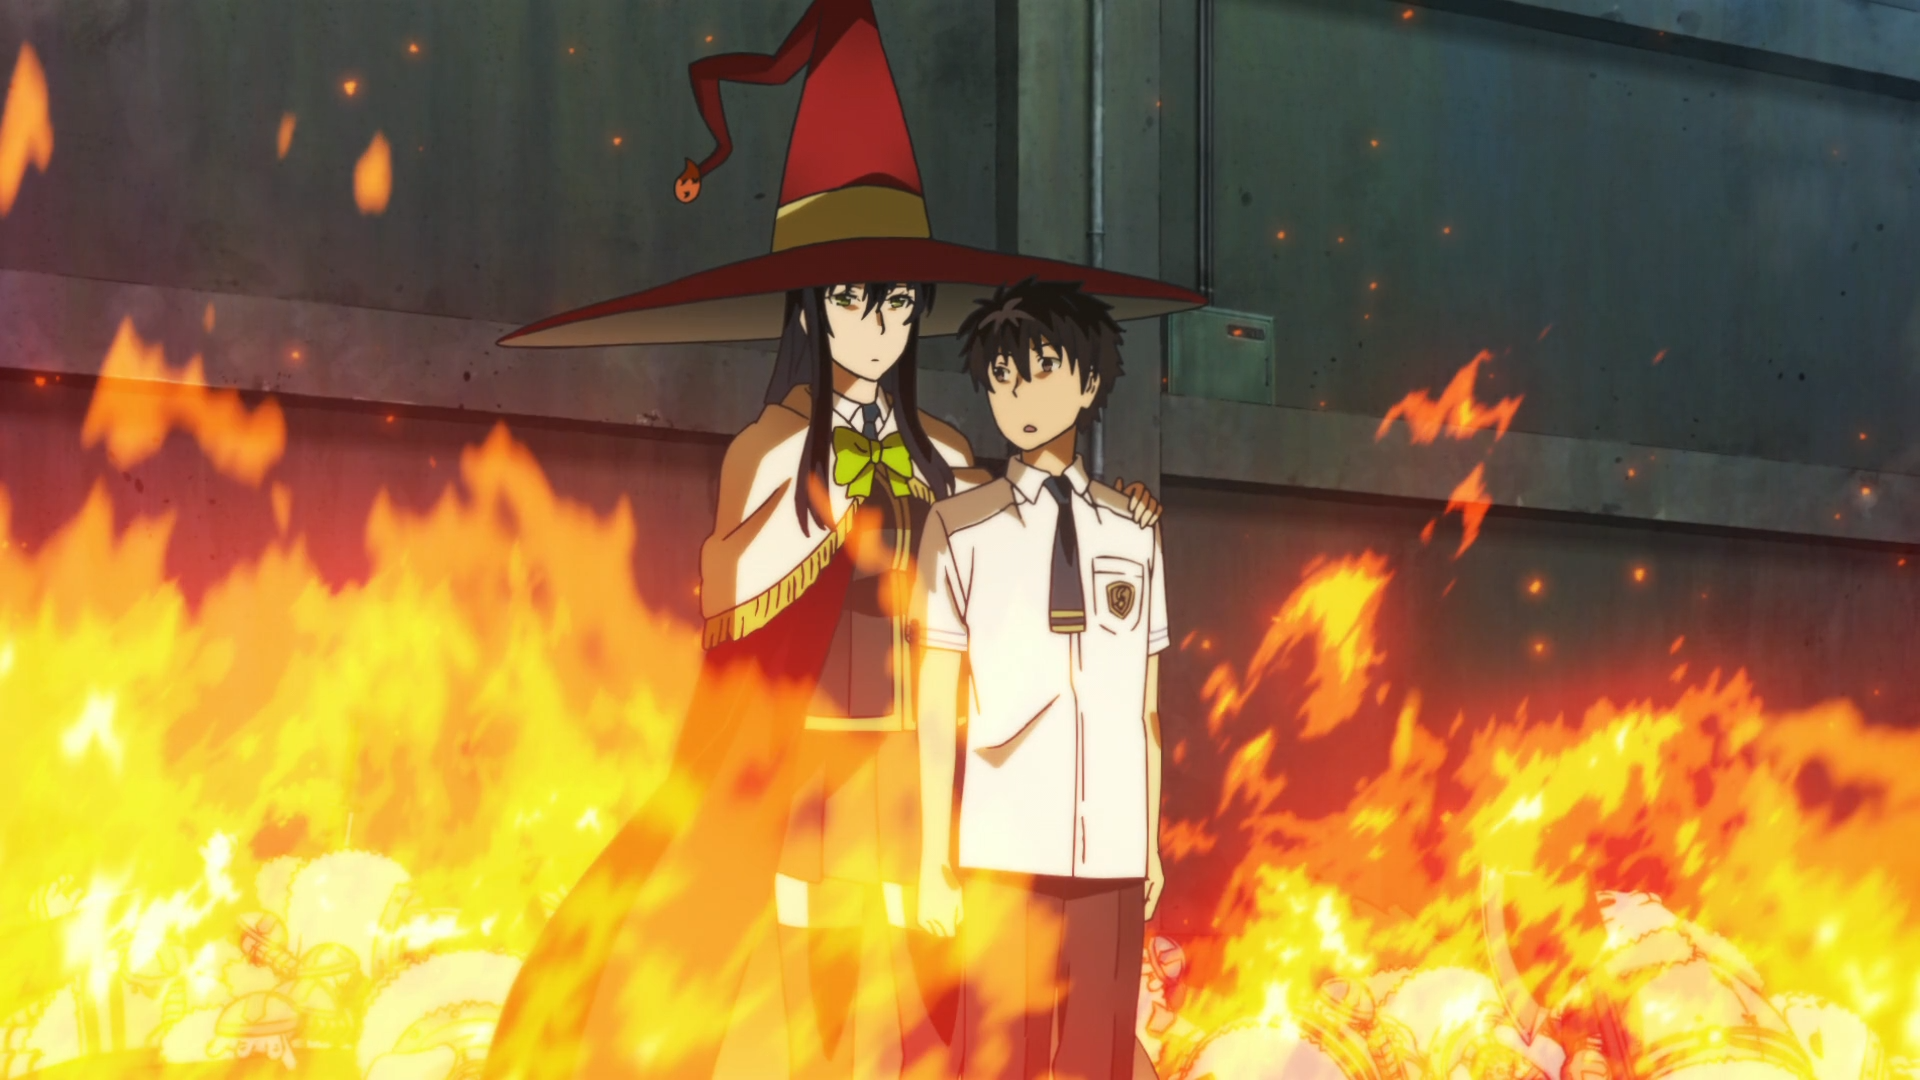 Ayaka Kagiri, the Witch of Flames, protects her charge, Honoka Takamiya, with a shield of fire in a scene from the Witch Craft Works TV anime.